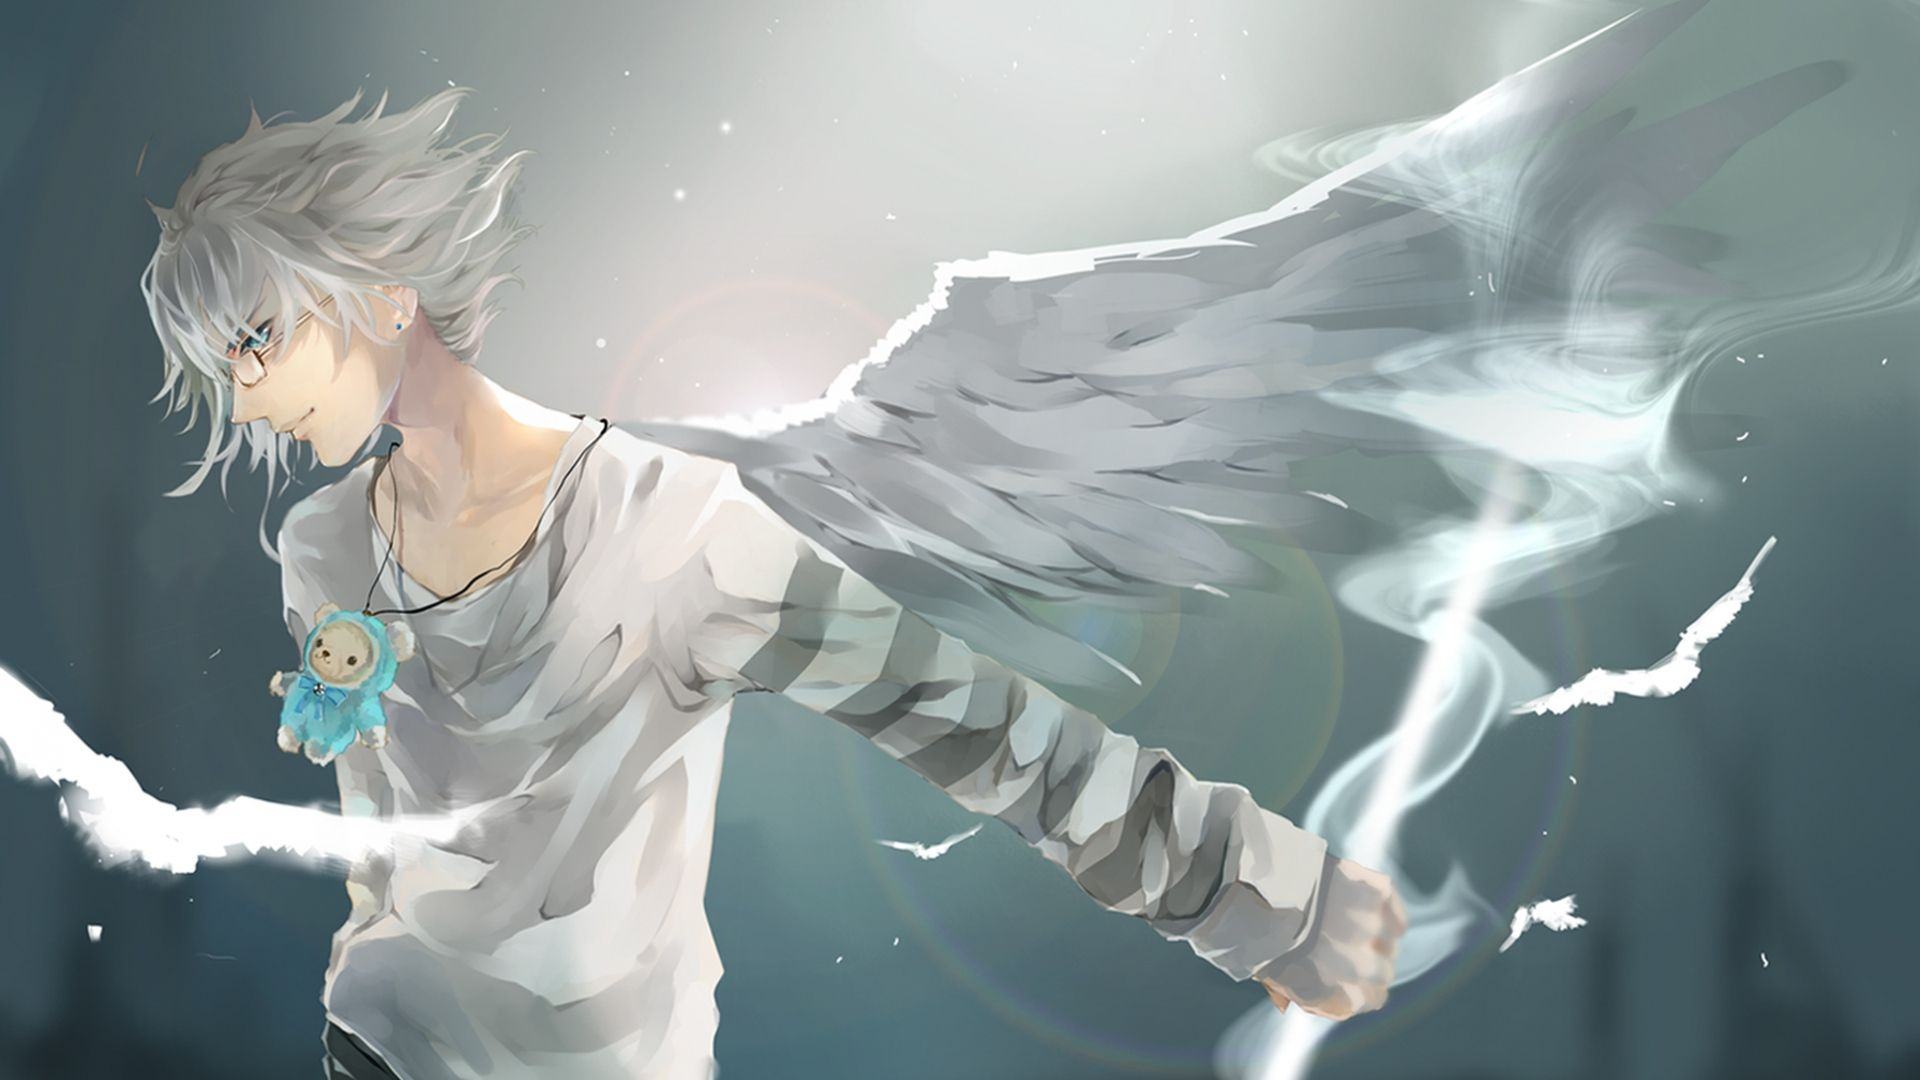 Download Wallpaper 1920x1080 Anime Boy Wings Art Full Hd 1080p Hd Background Animasi Anime Anak Laki Laki Anime Angel